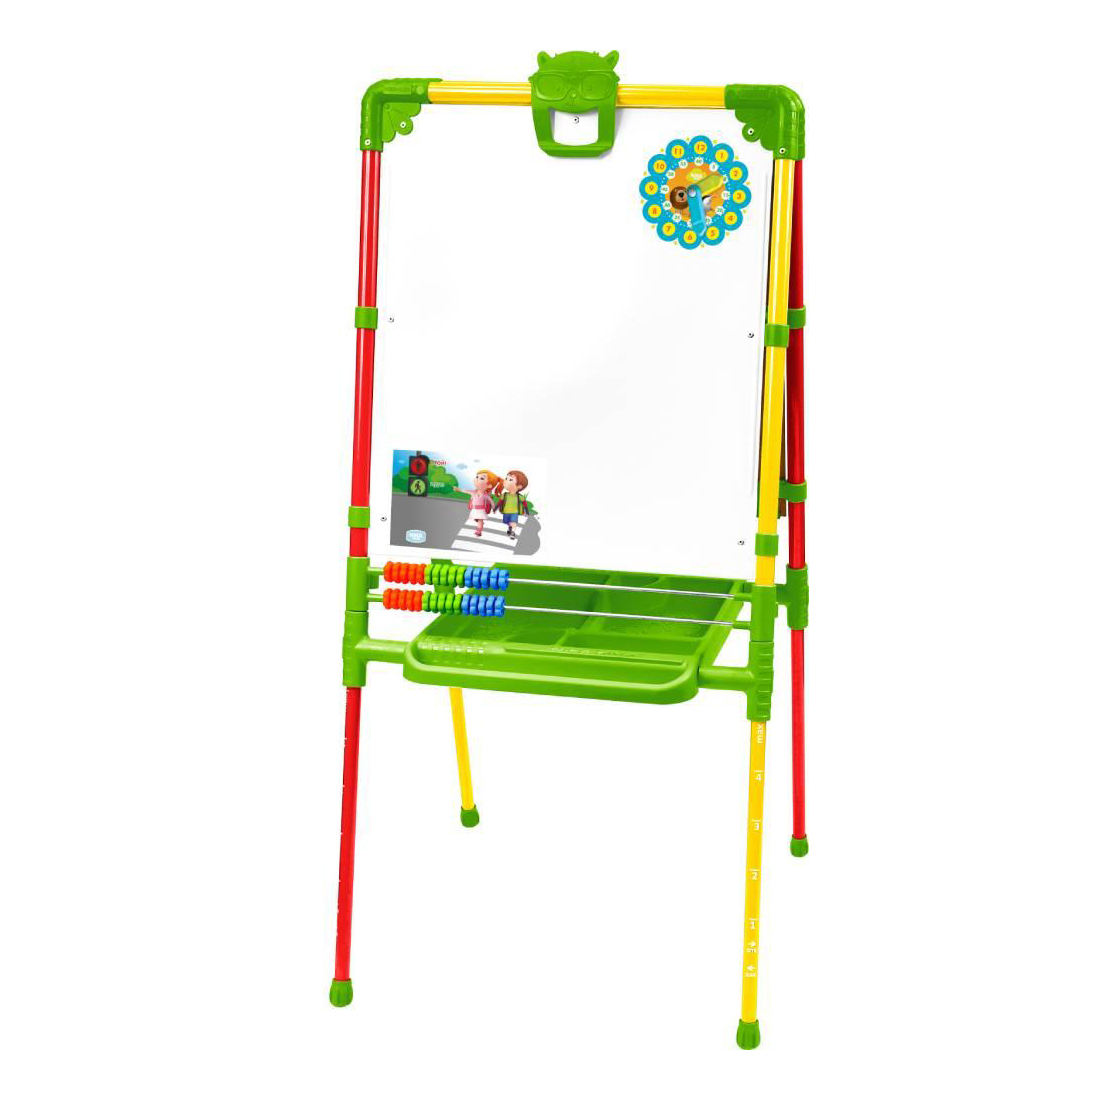 TOP Quality growing folding double-sided easel M2 for kids aged 1,5 years and older, chalkboard/magnetic whiteboard 2-in-1